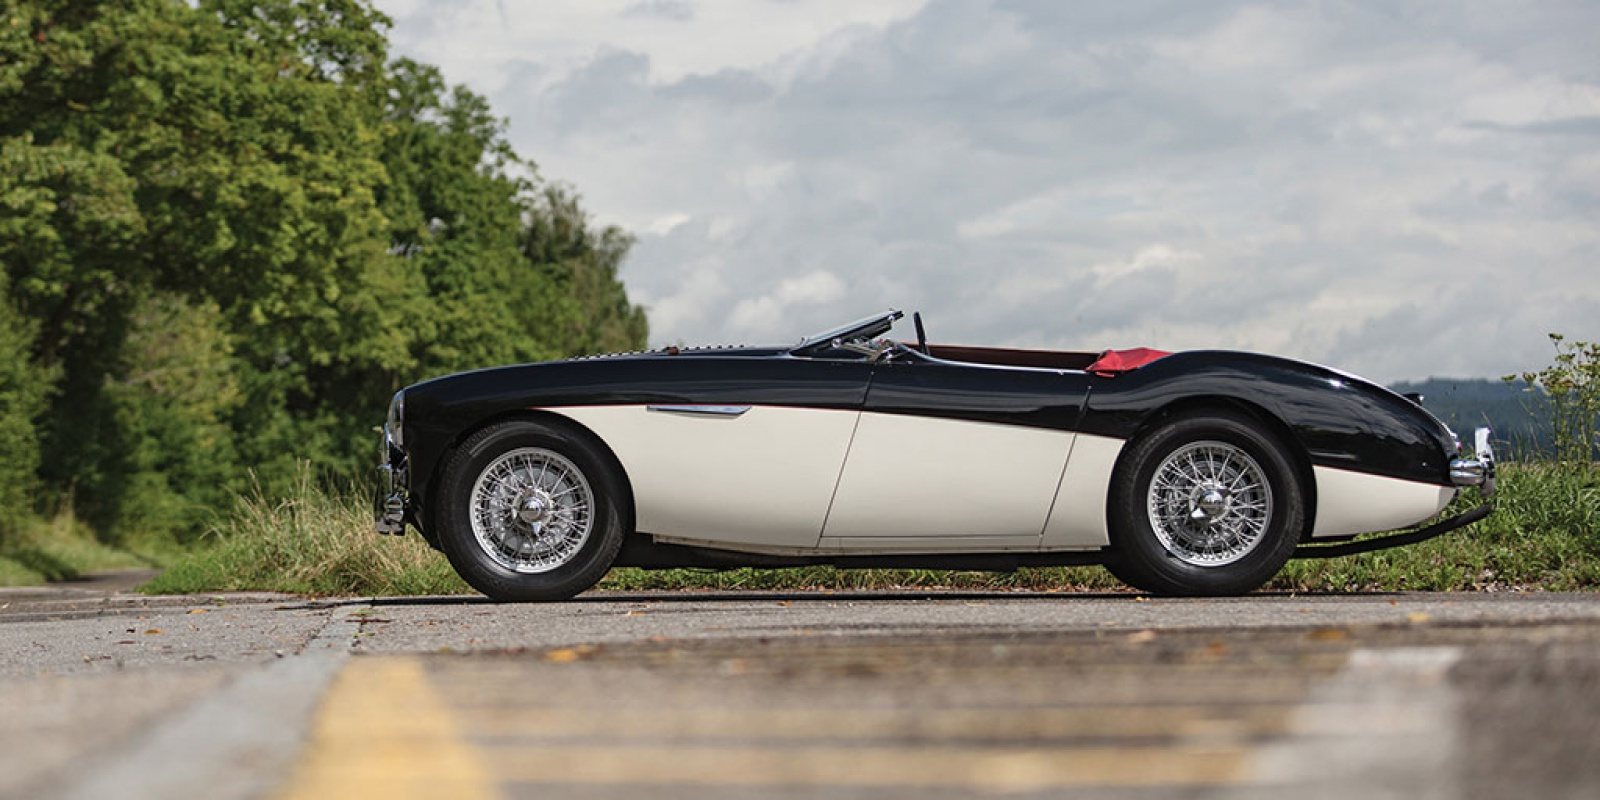 1955 Austin-Healey 100-4 Le Mans Upgrade from new